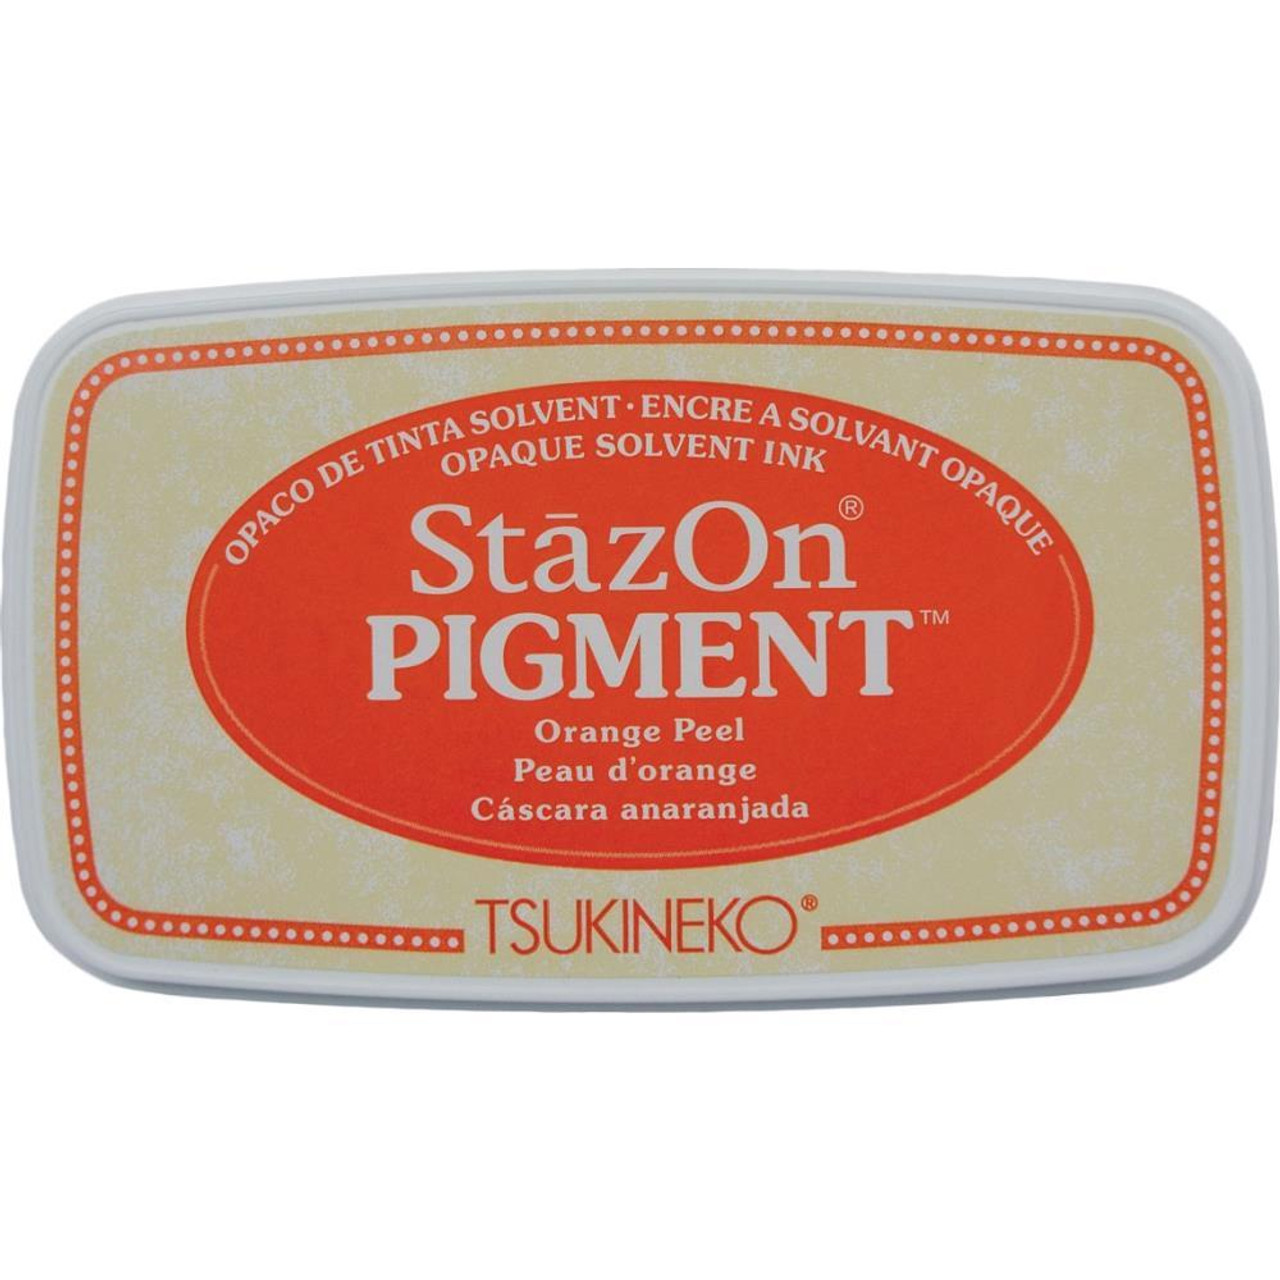 StazOn Pigment Ink Pad - Orange Peel